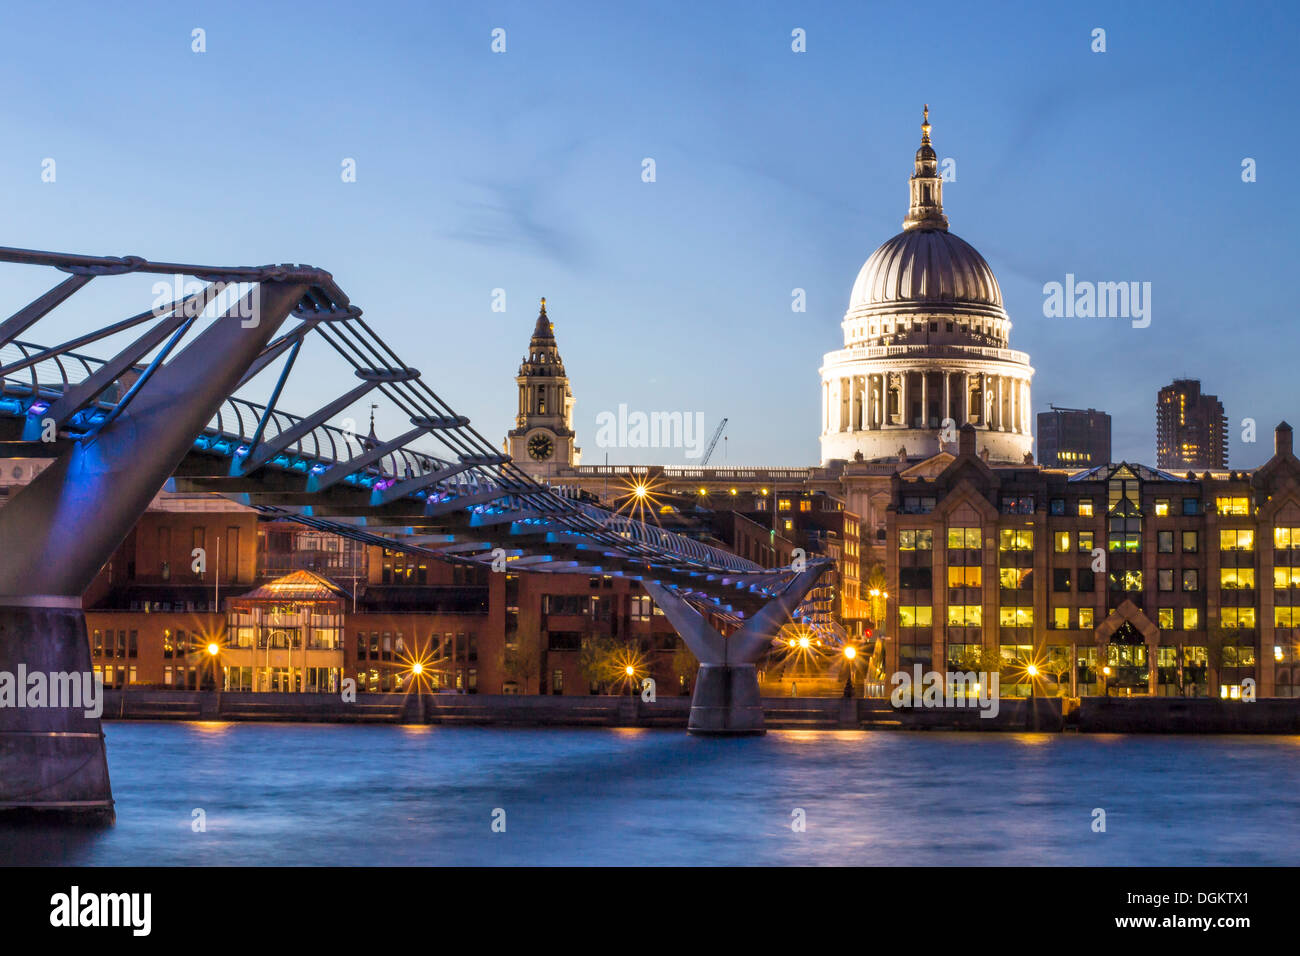 A view from Bankside towards St Paul's cathedral dome. - Stock Image